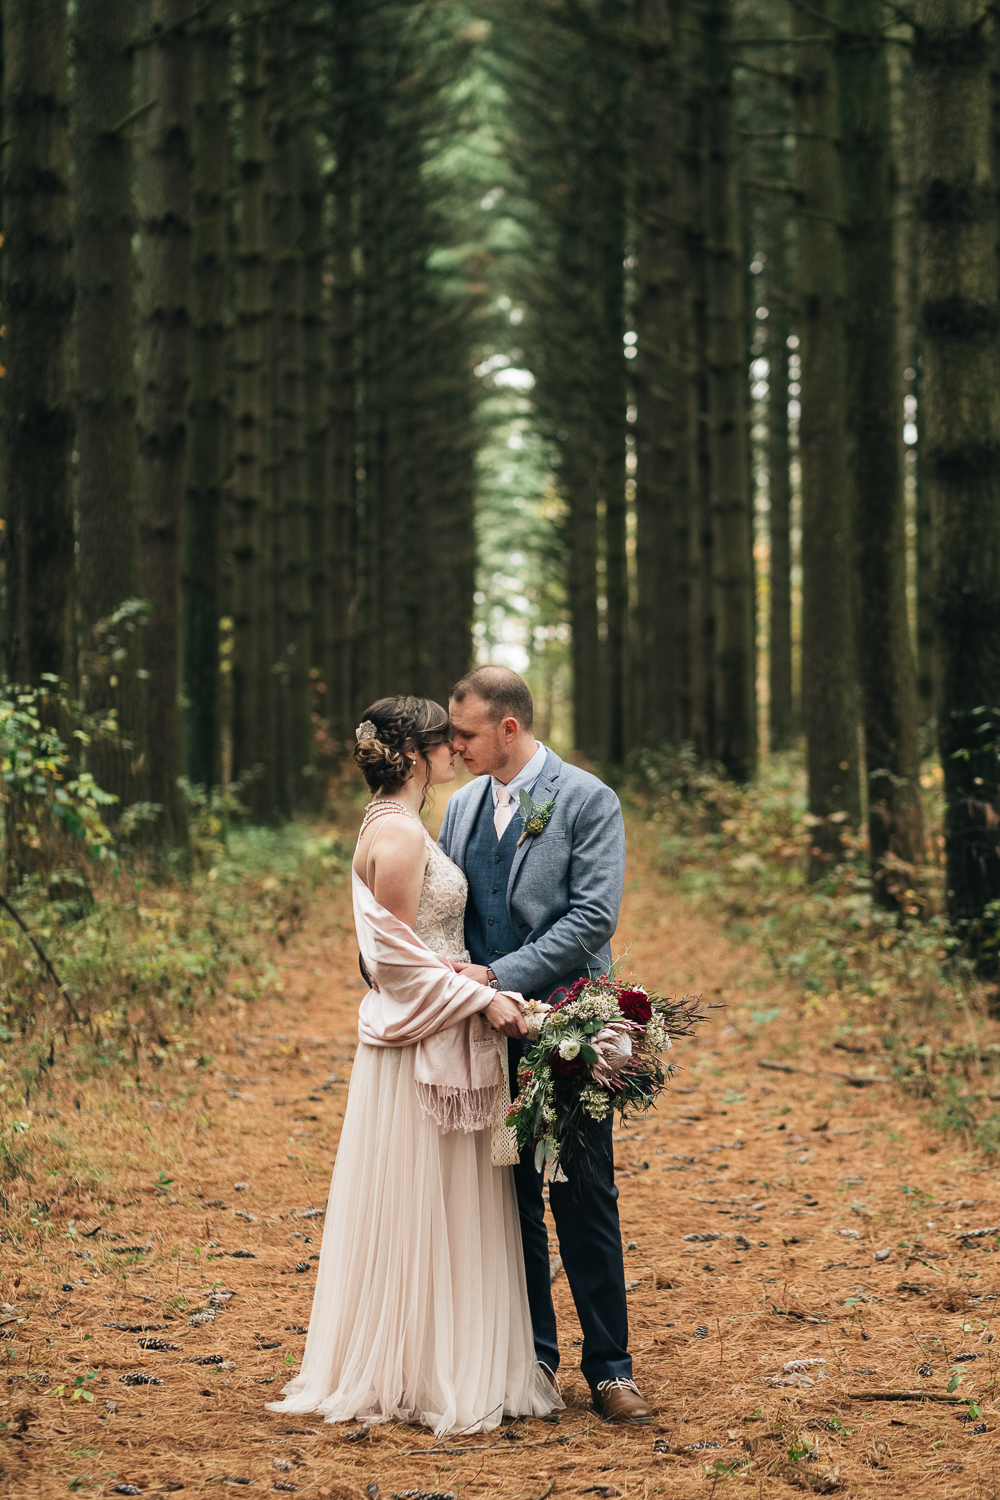 The bride stands at Oak Openings in her custom designed wedding dress from Belle Amour Bridal in Toledo